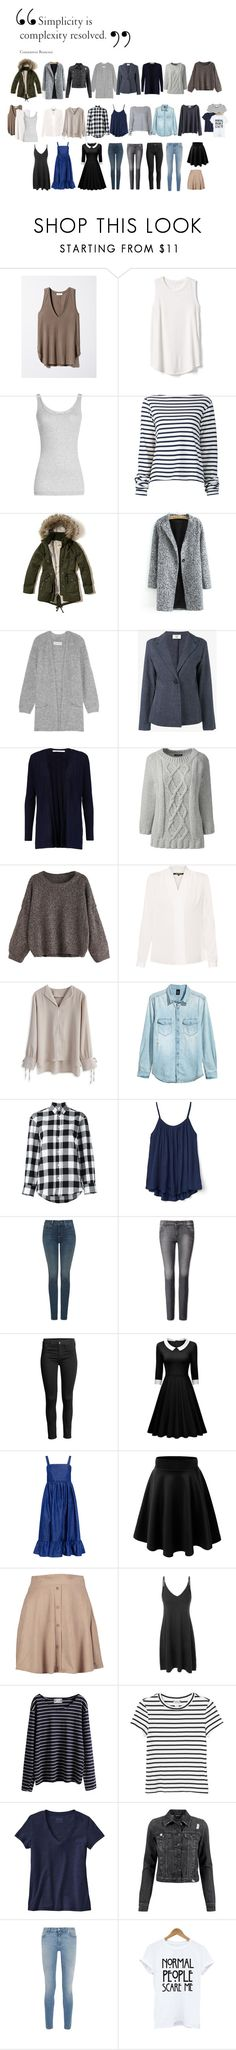 """30 item year-round capsule wardrobe"" by evil777squirrel ❤ liked on Polyvore featuring Gap, Vince, Jacquemus, Hollister Co., By Malene Birger, Maryam Nassir Zadeh, Diane Von Furstenberg, Lands' End, Kobi Halperin and Chicwish"